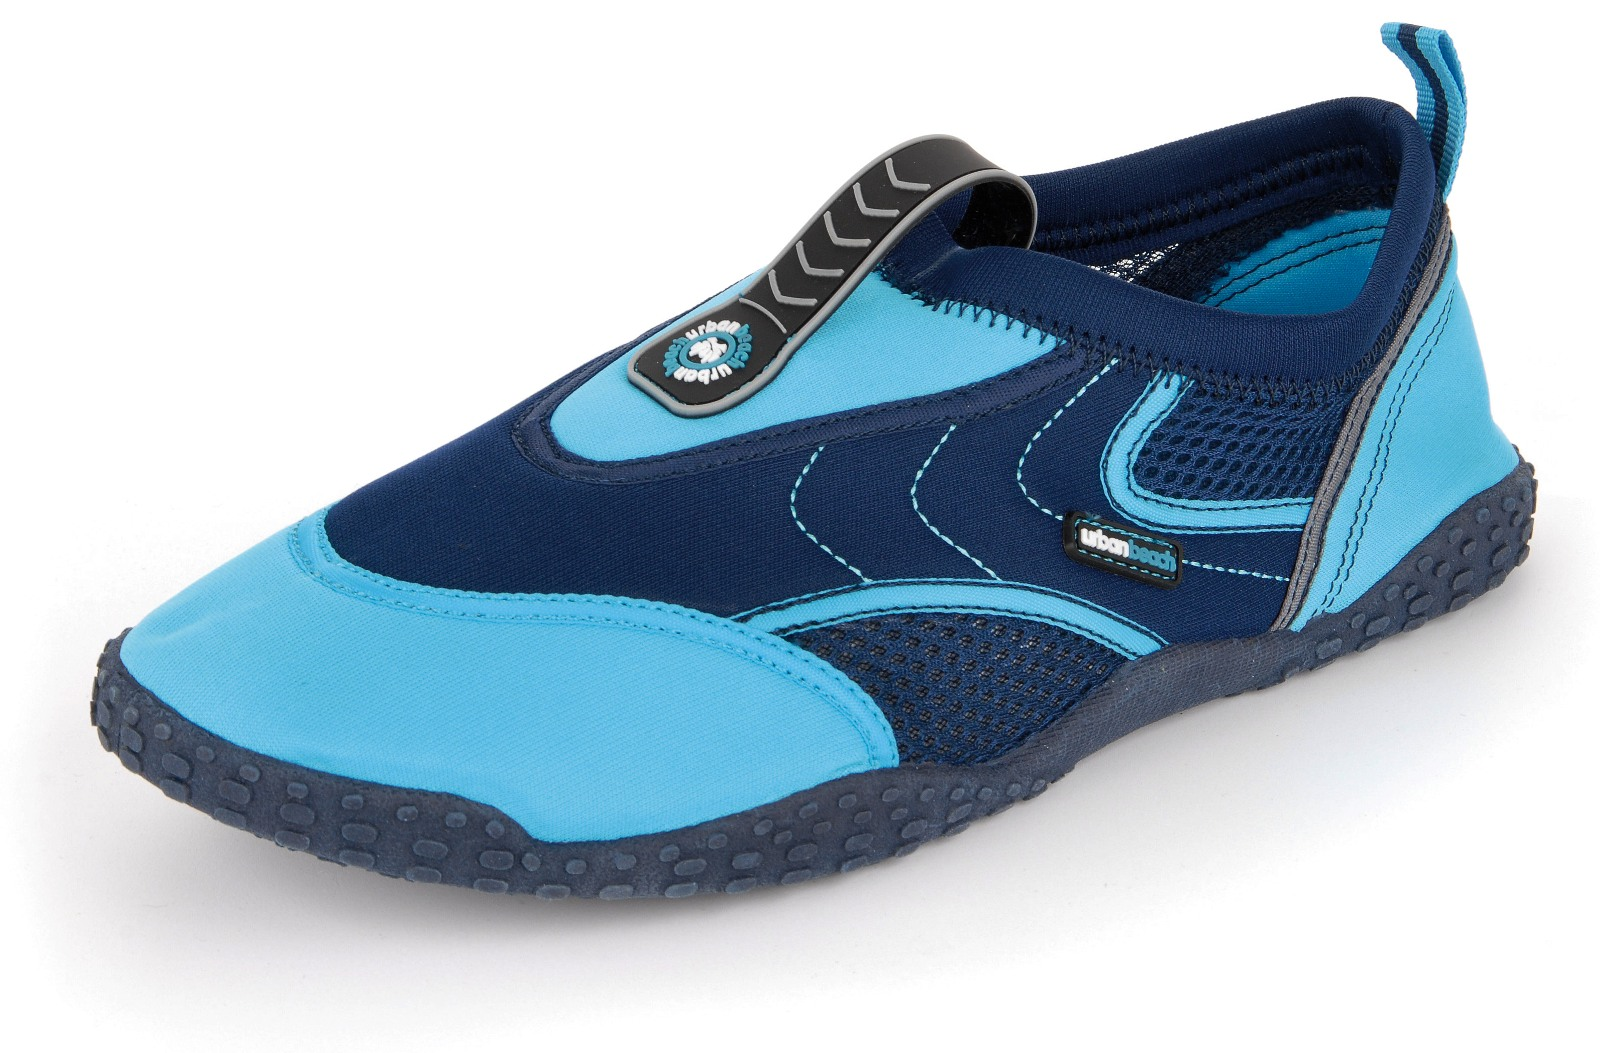 water shoes & sandals Splash in a stream or wade through the shallows in a pair of water shoes or water sandals. Reliable water shoes come with a hard sole to protect your feet from cuts and abrasions.